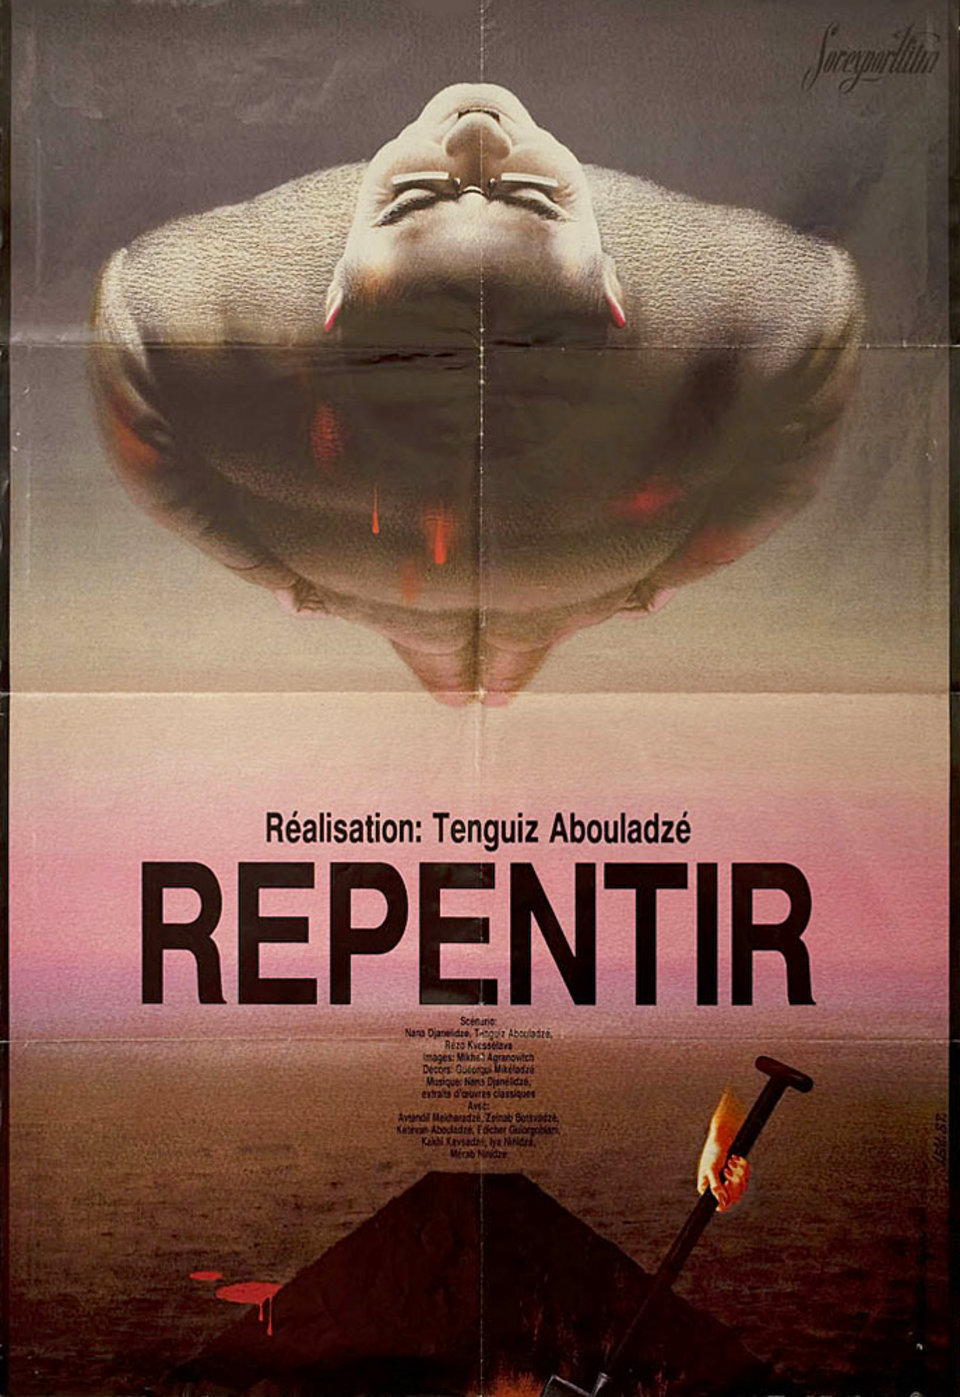 Repentance 1984 Russian B1 Poster